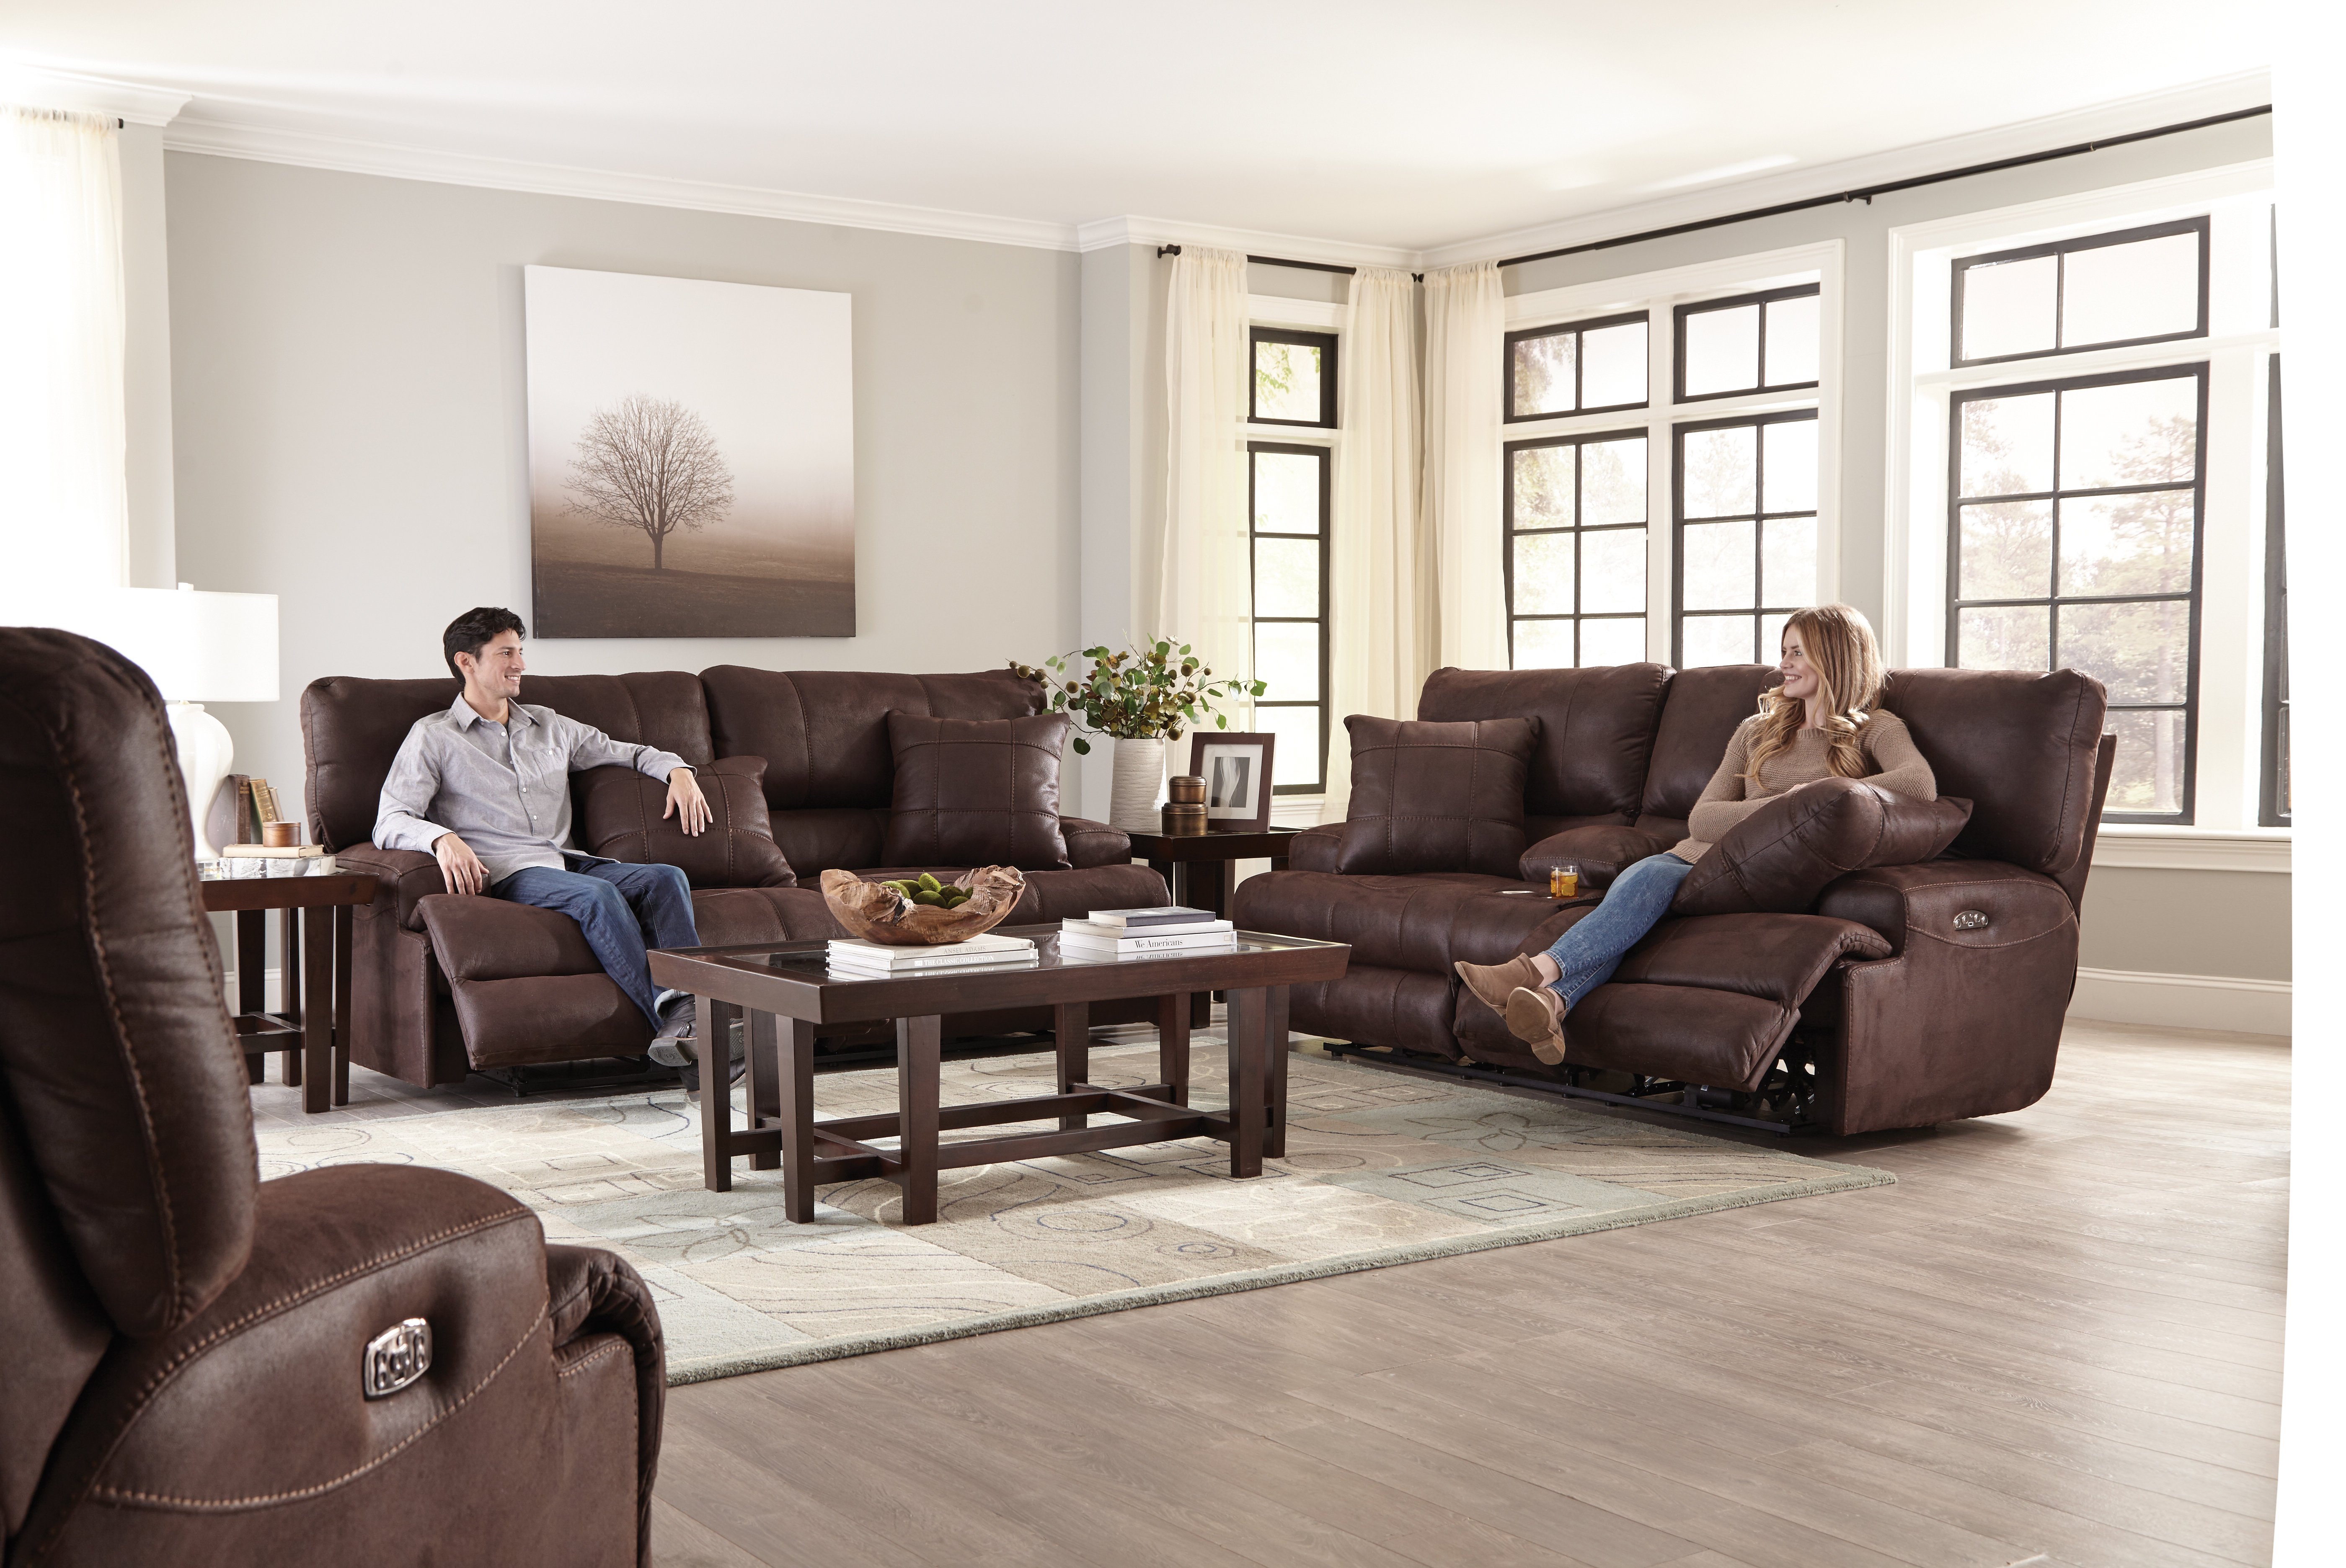 Catnapper Monaco Reclining Living Room Sets Wayfair inside 15 Awesome Designs of How to Make Recliner Living Room Set